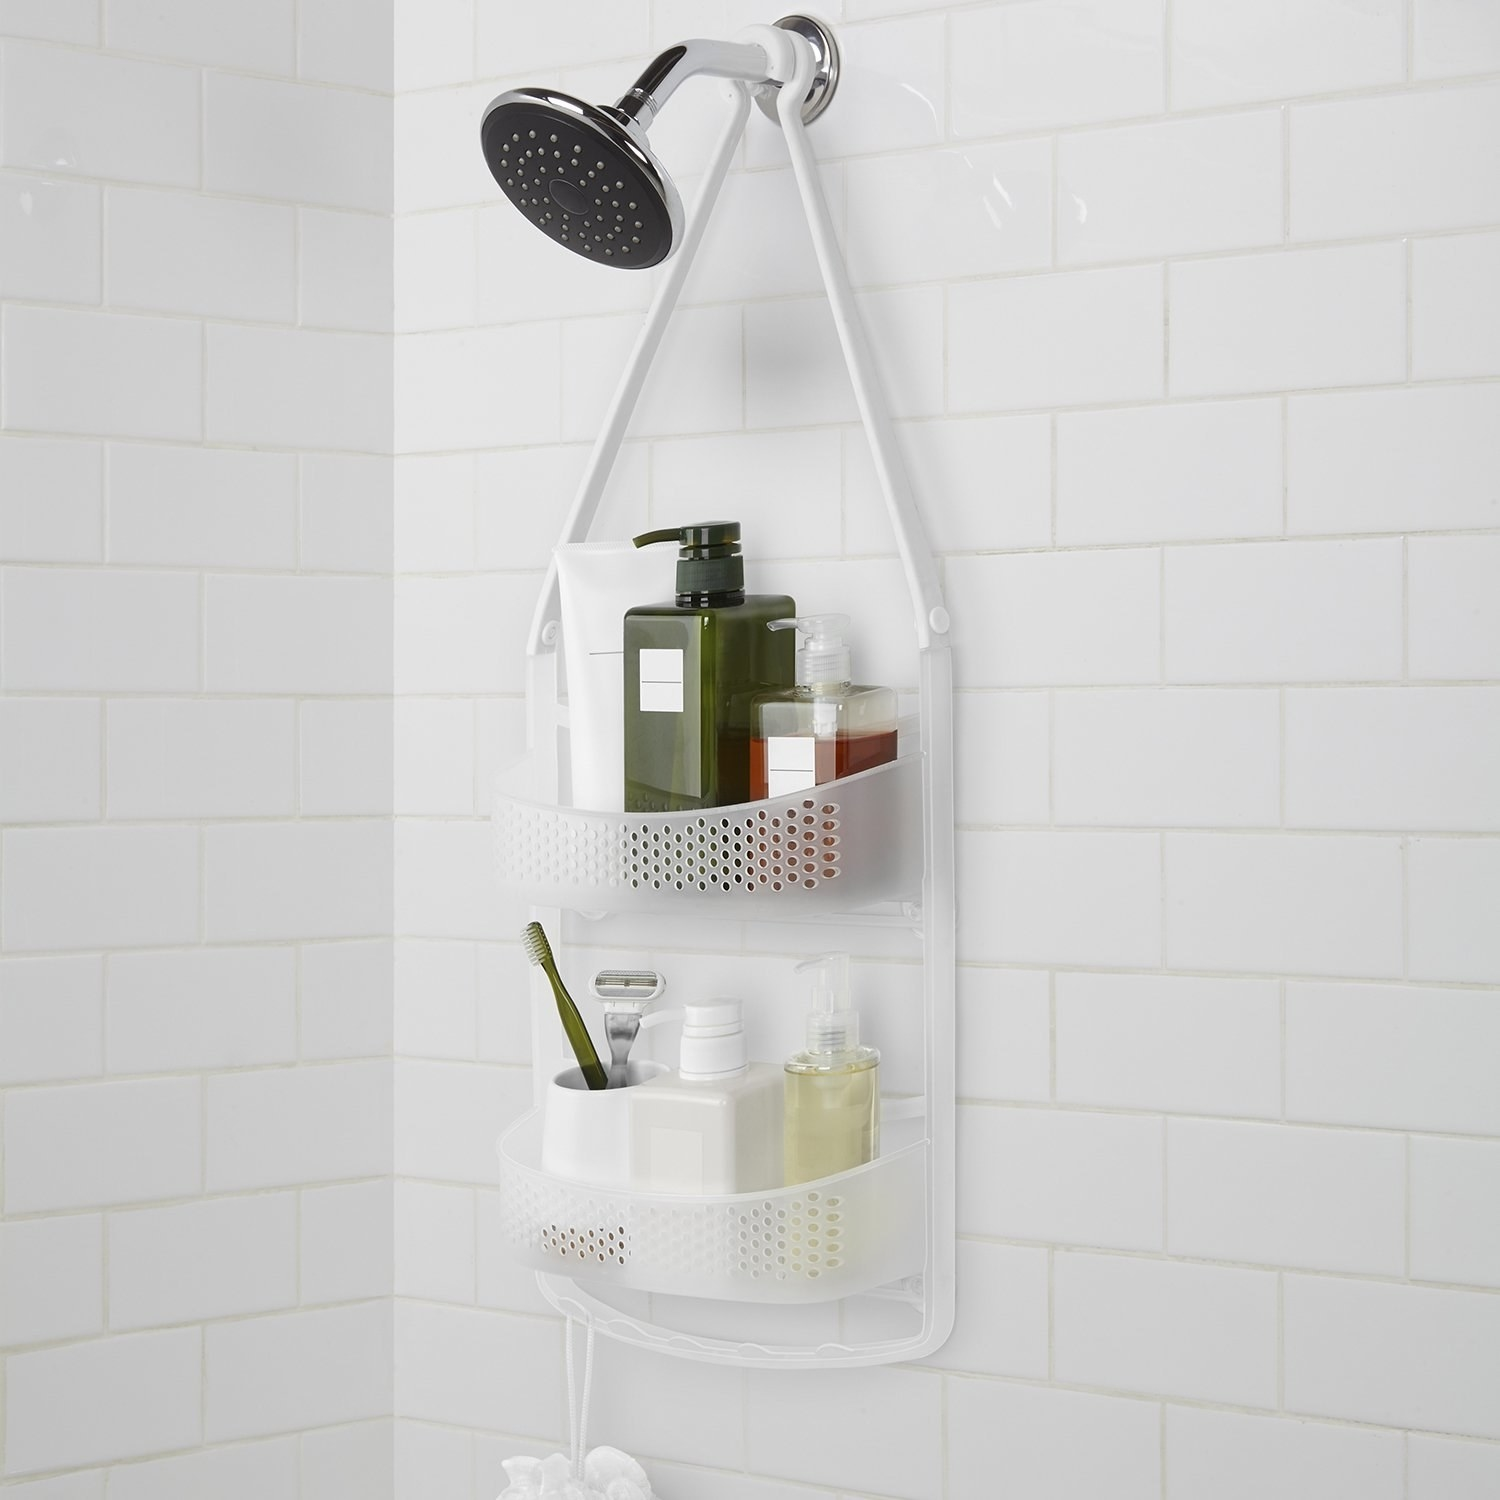 A caddy hanging from a shower head